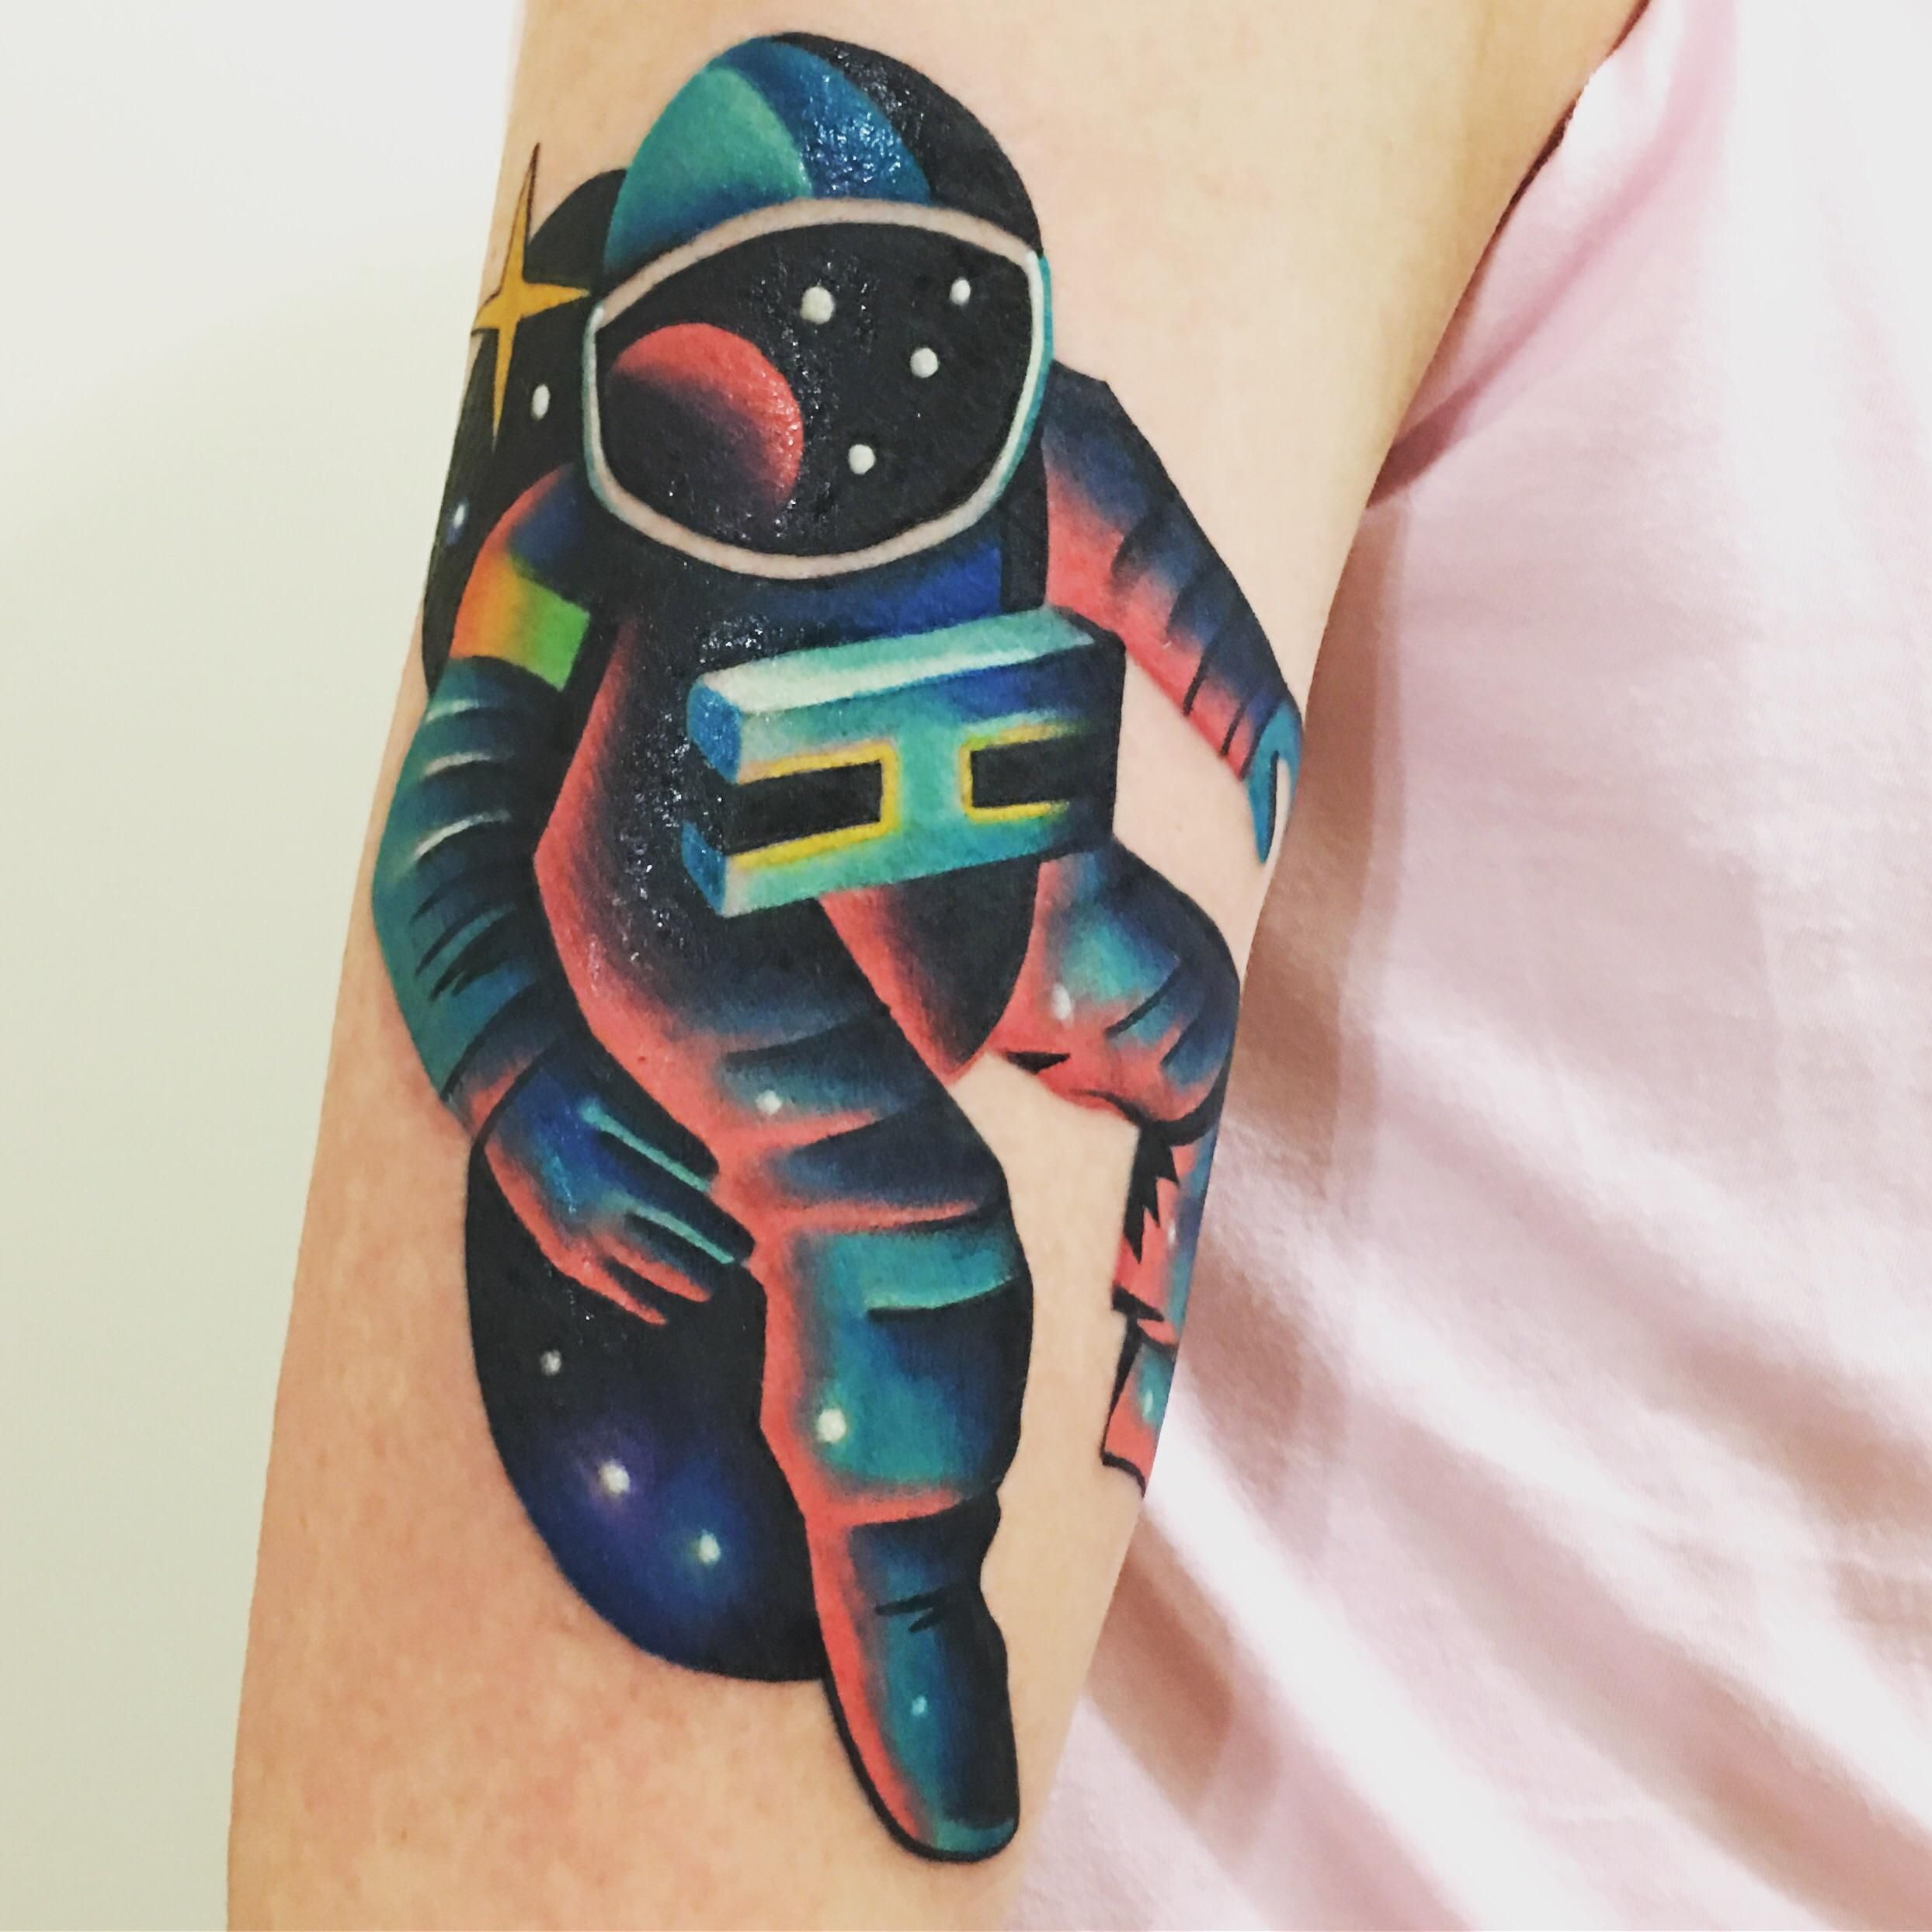 Astronaut done by david cote at imperial tattoo connexion